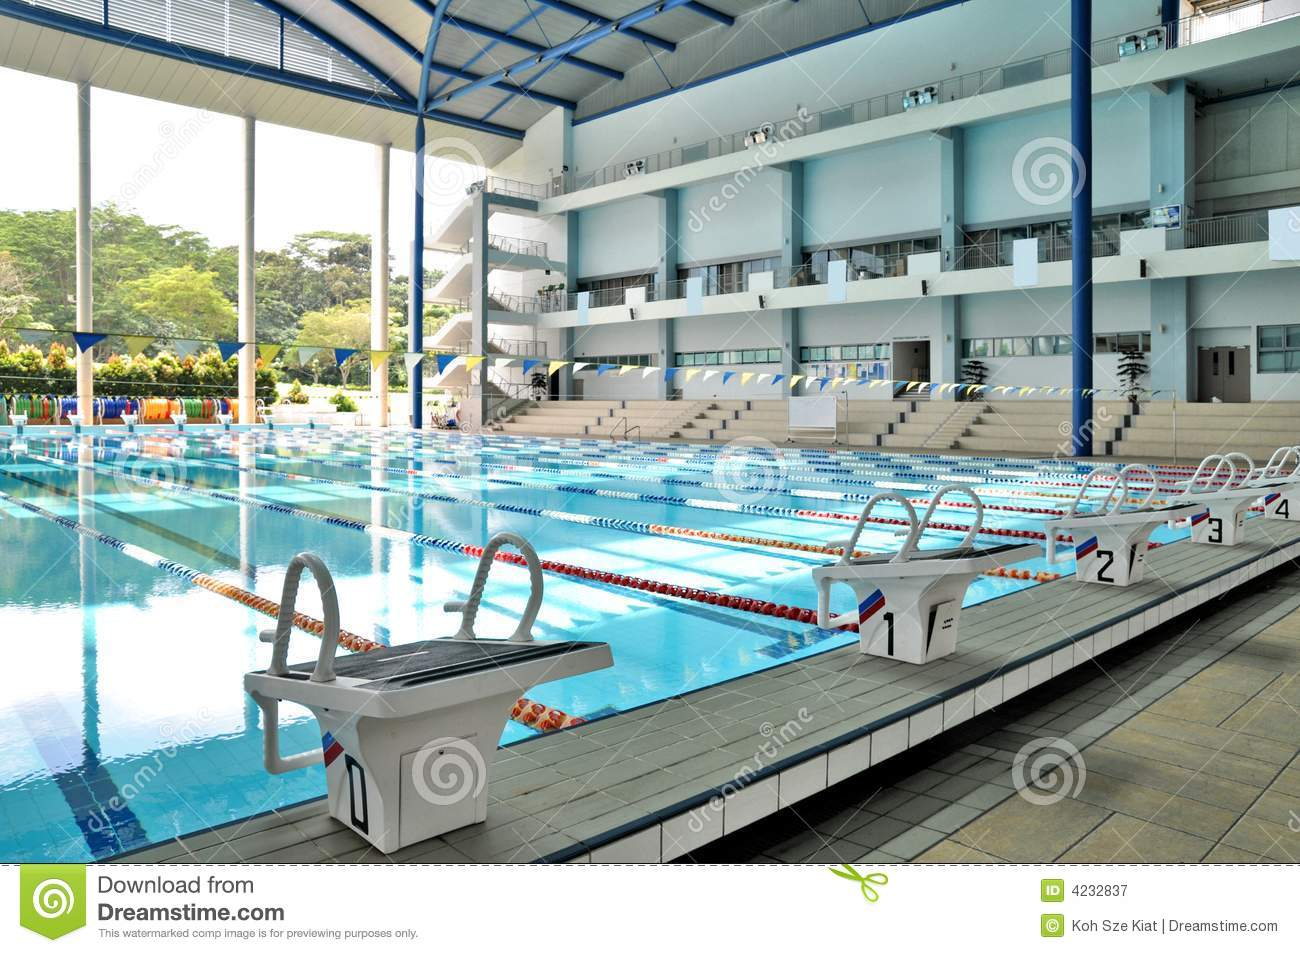 Piscine olympique d 39 int rieur de taille photographie stock libre de droits image 4232837 for Piscine d interieur